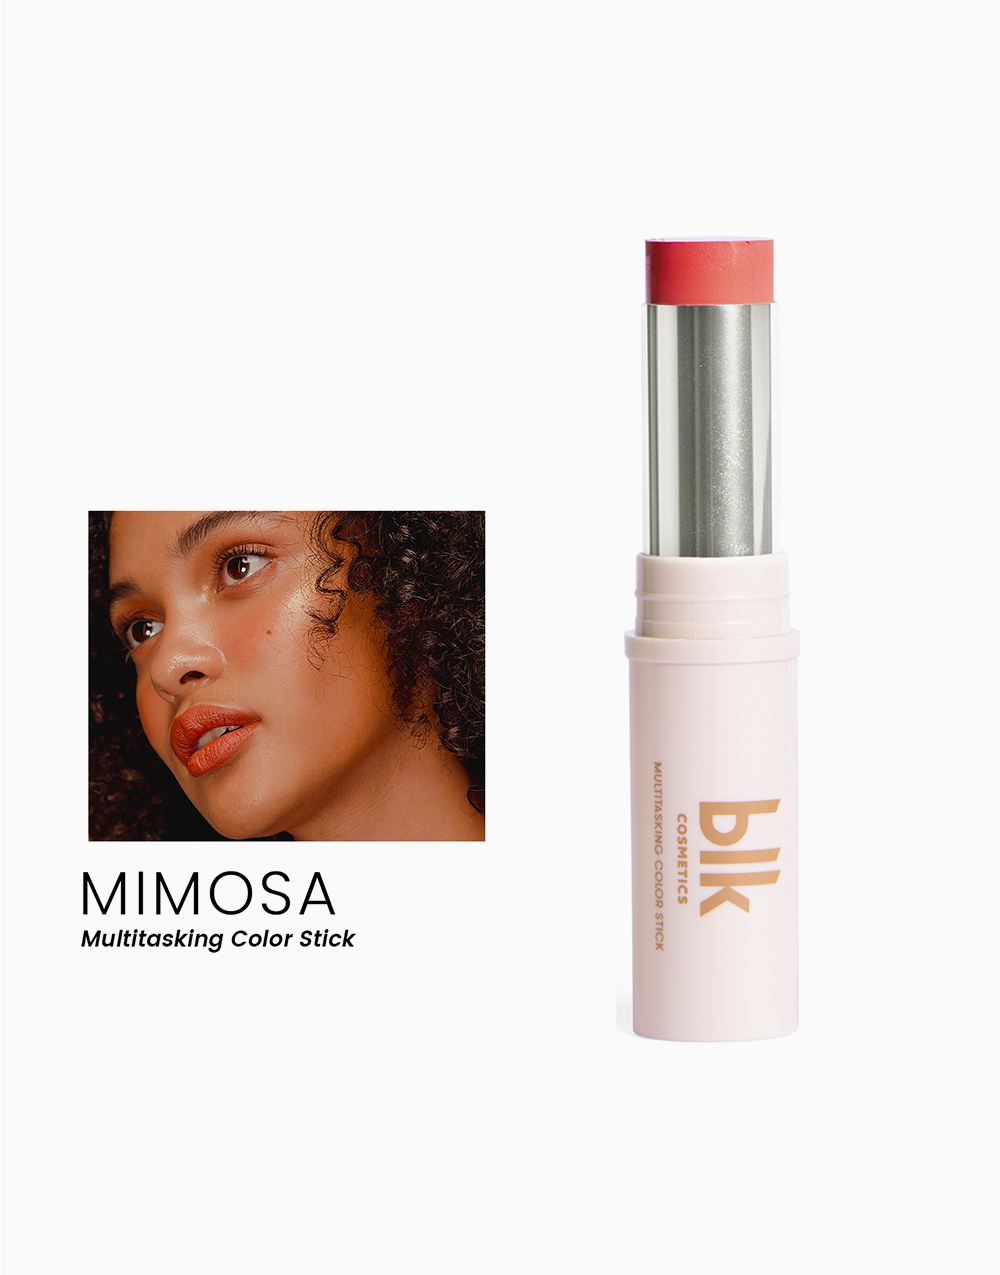 Multitasking Color Stick by BLK Cosmetics   Mimosa